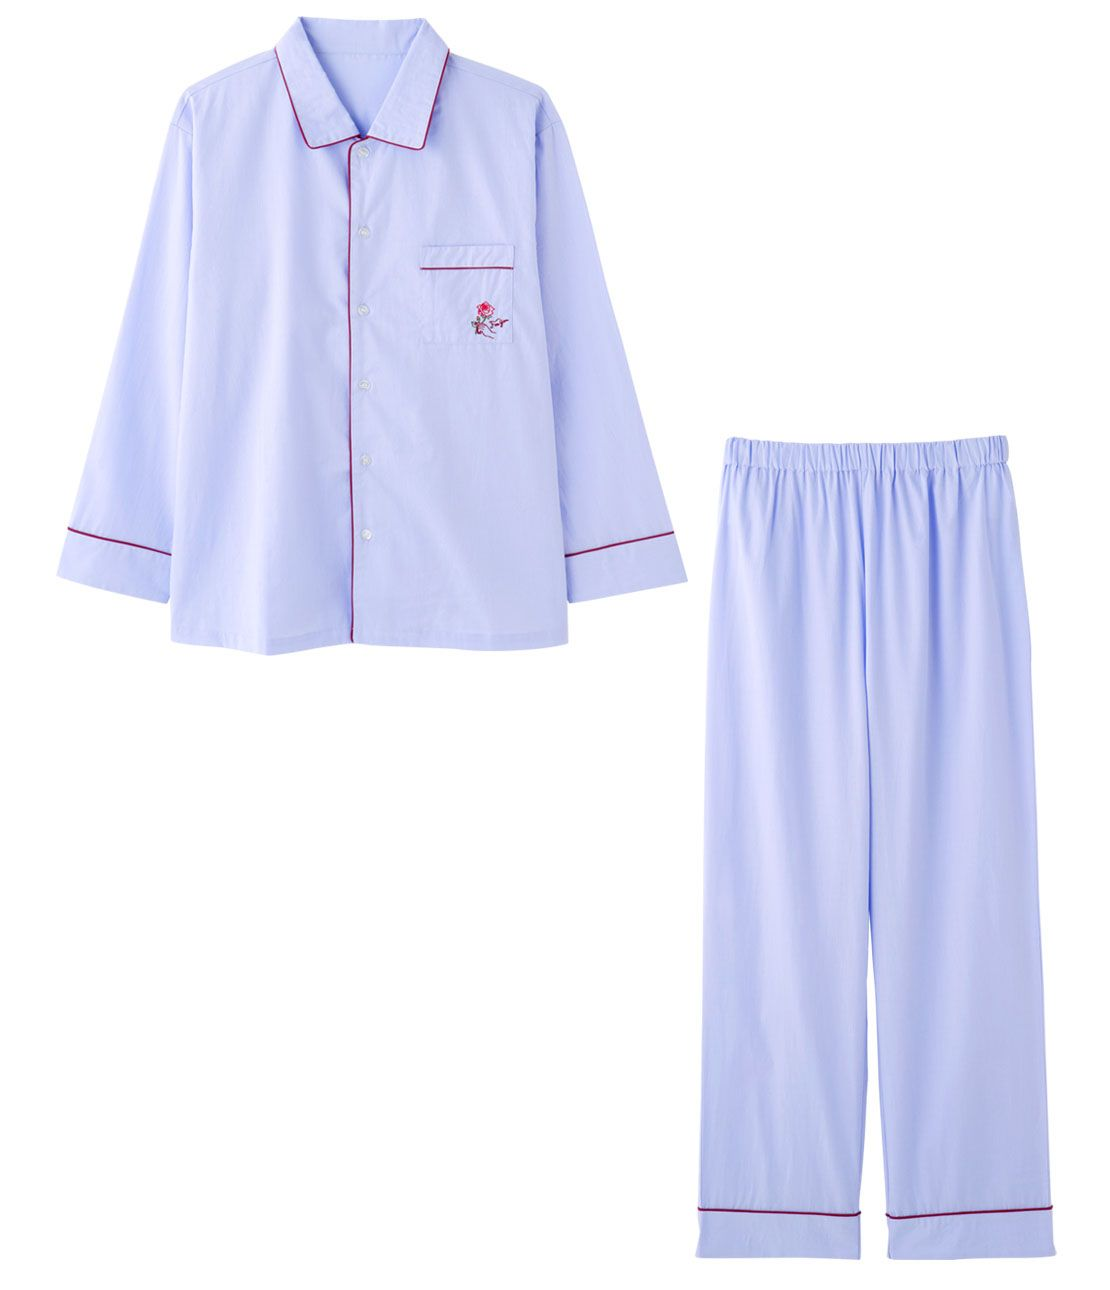 Men's cotton shirts pajamas